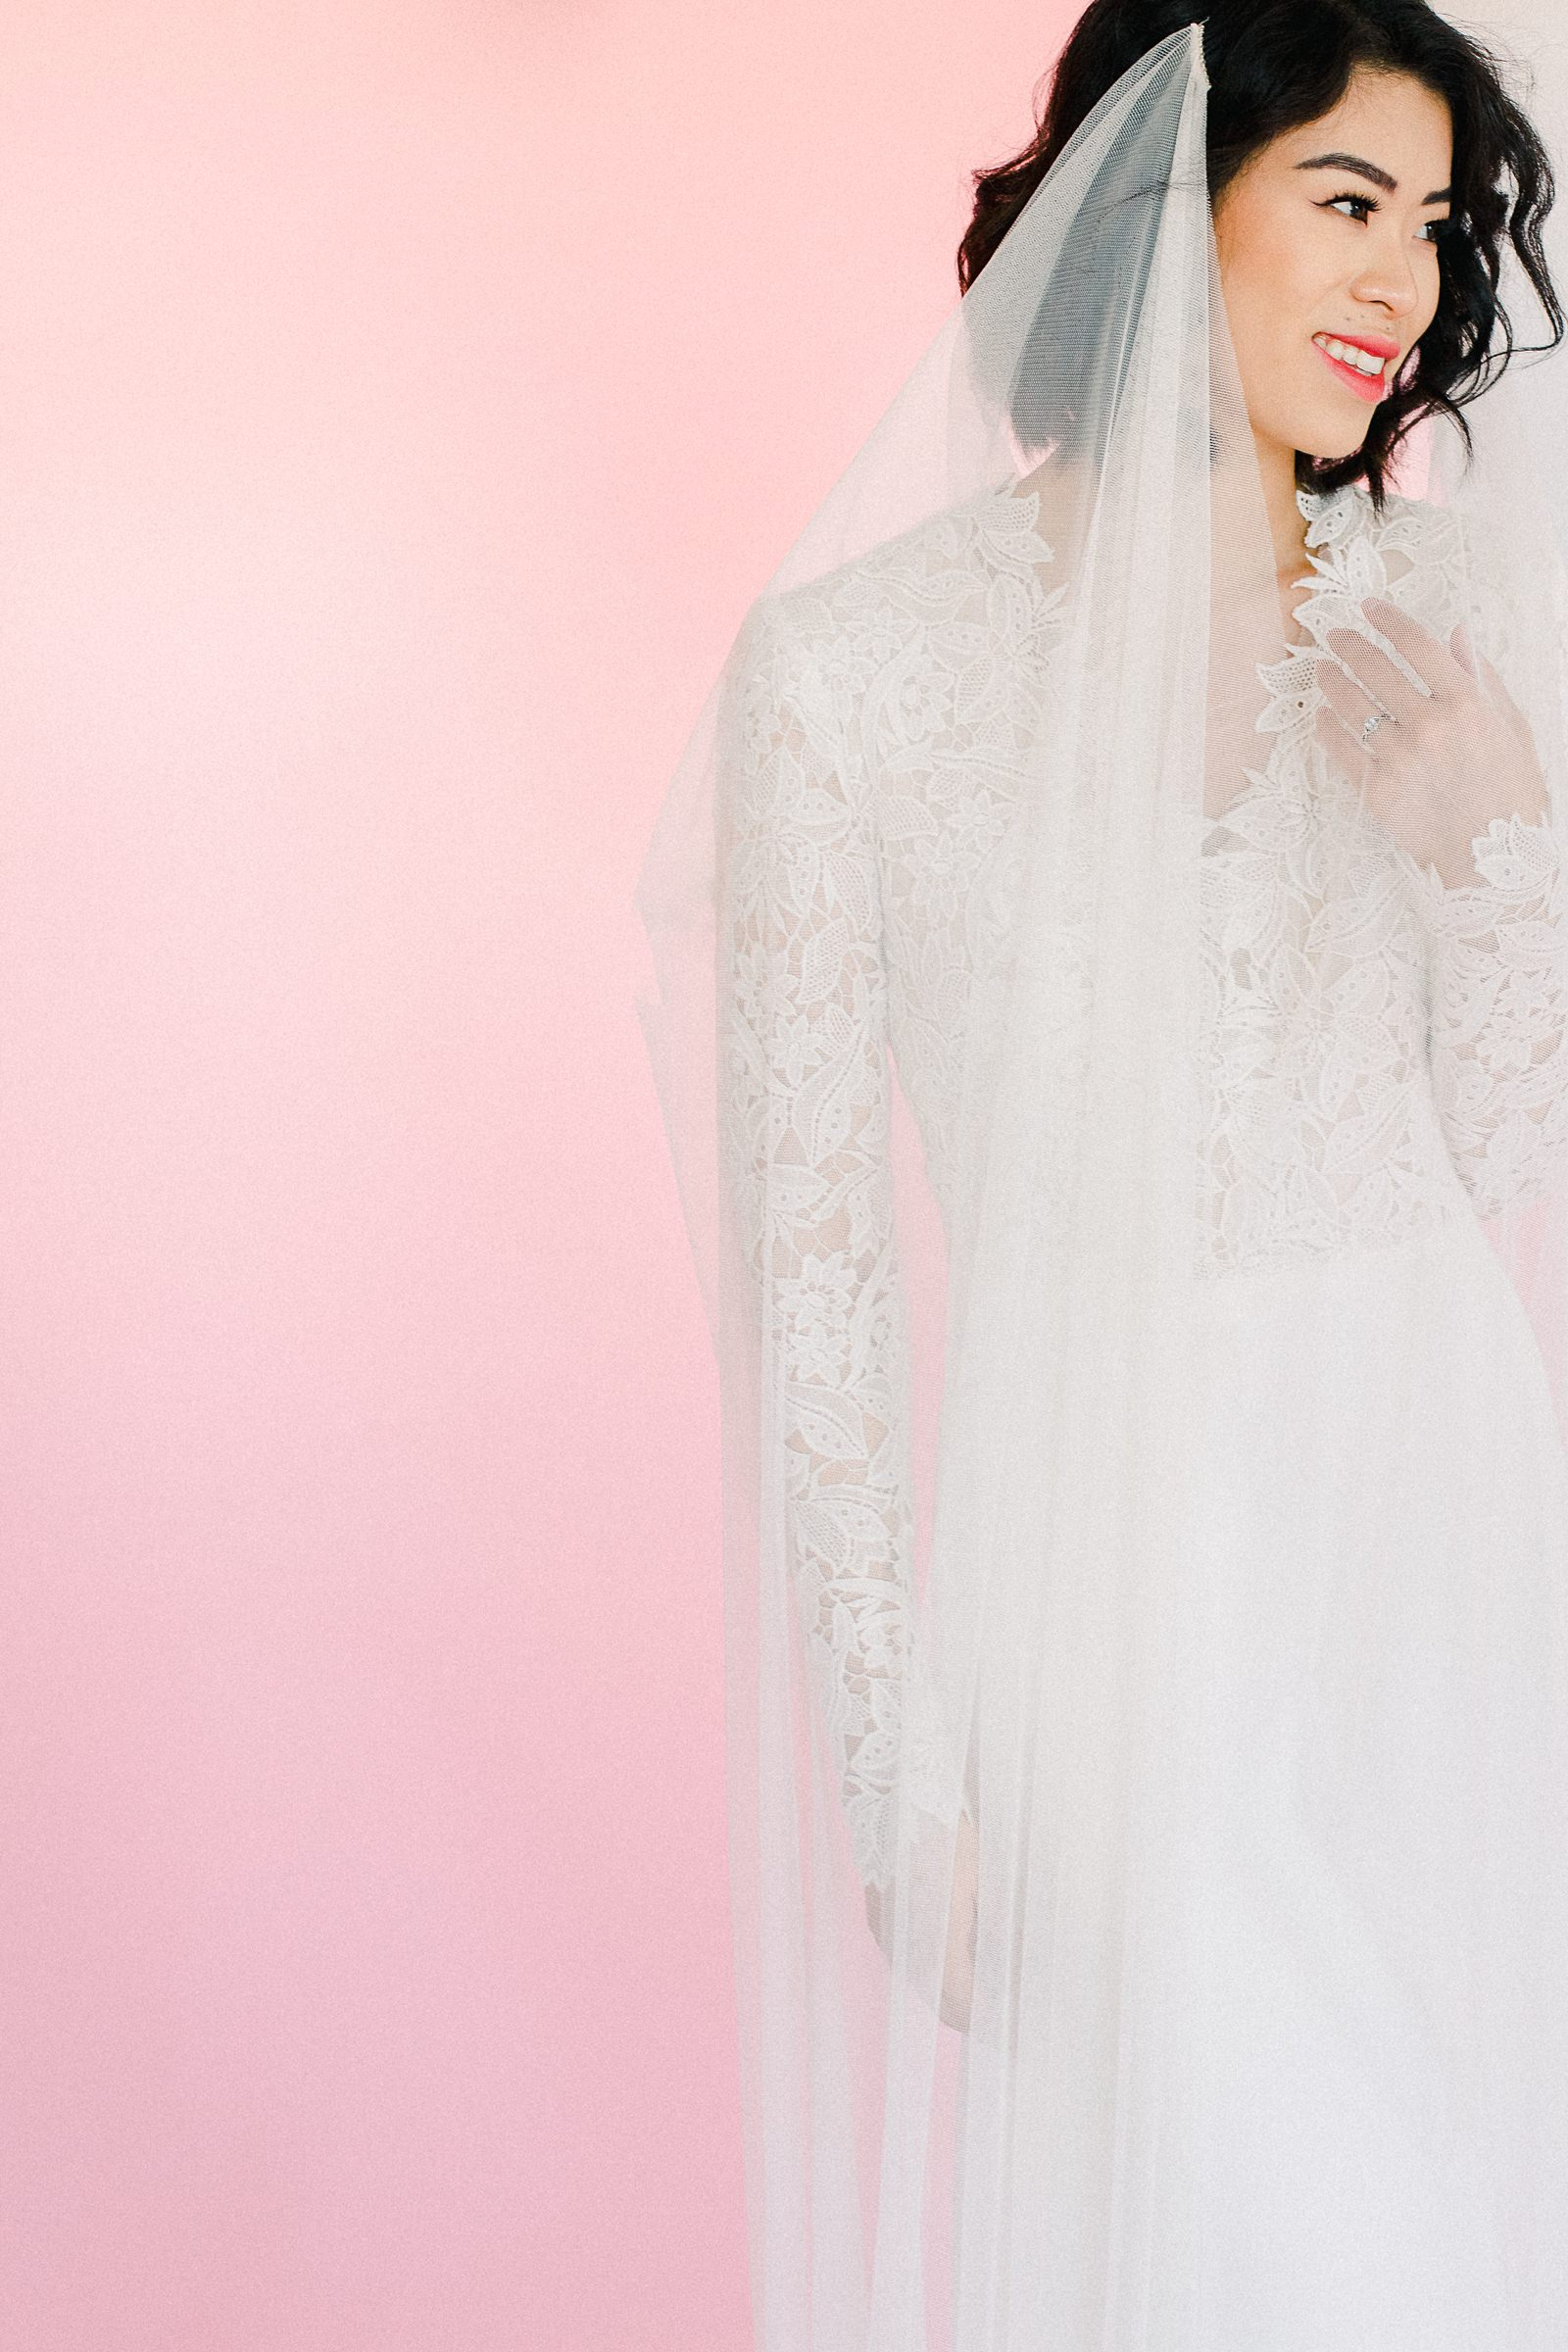 Utah wedding photography inspiration, bride in Lazaro lace v-neck wedding dress with vintage lace and long sleeves, draped long flowy veil